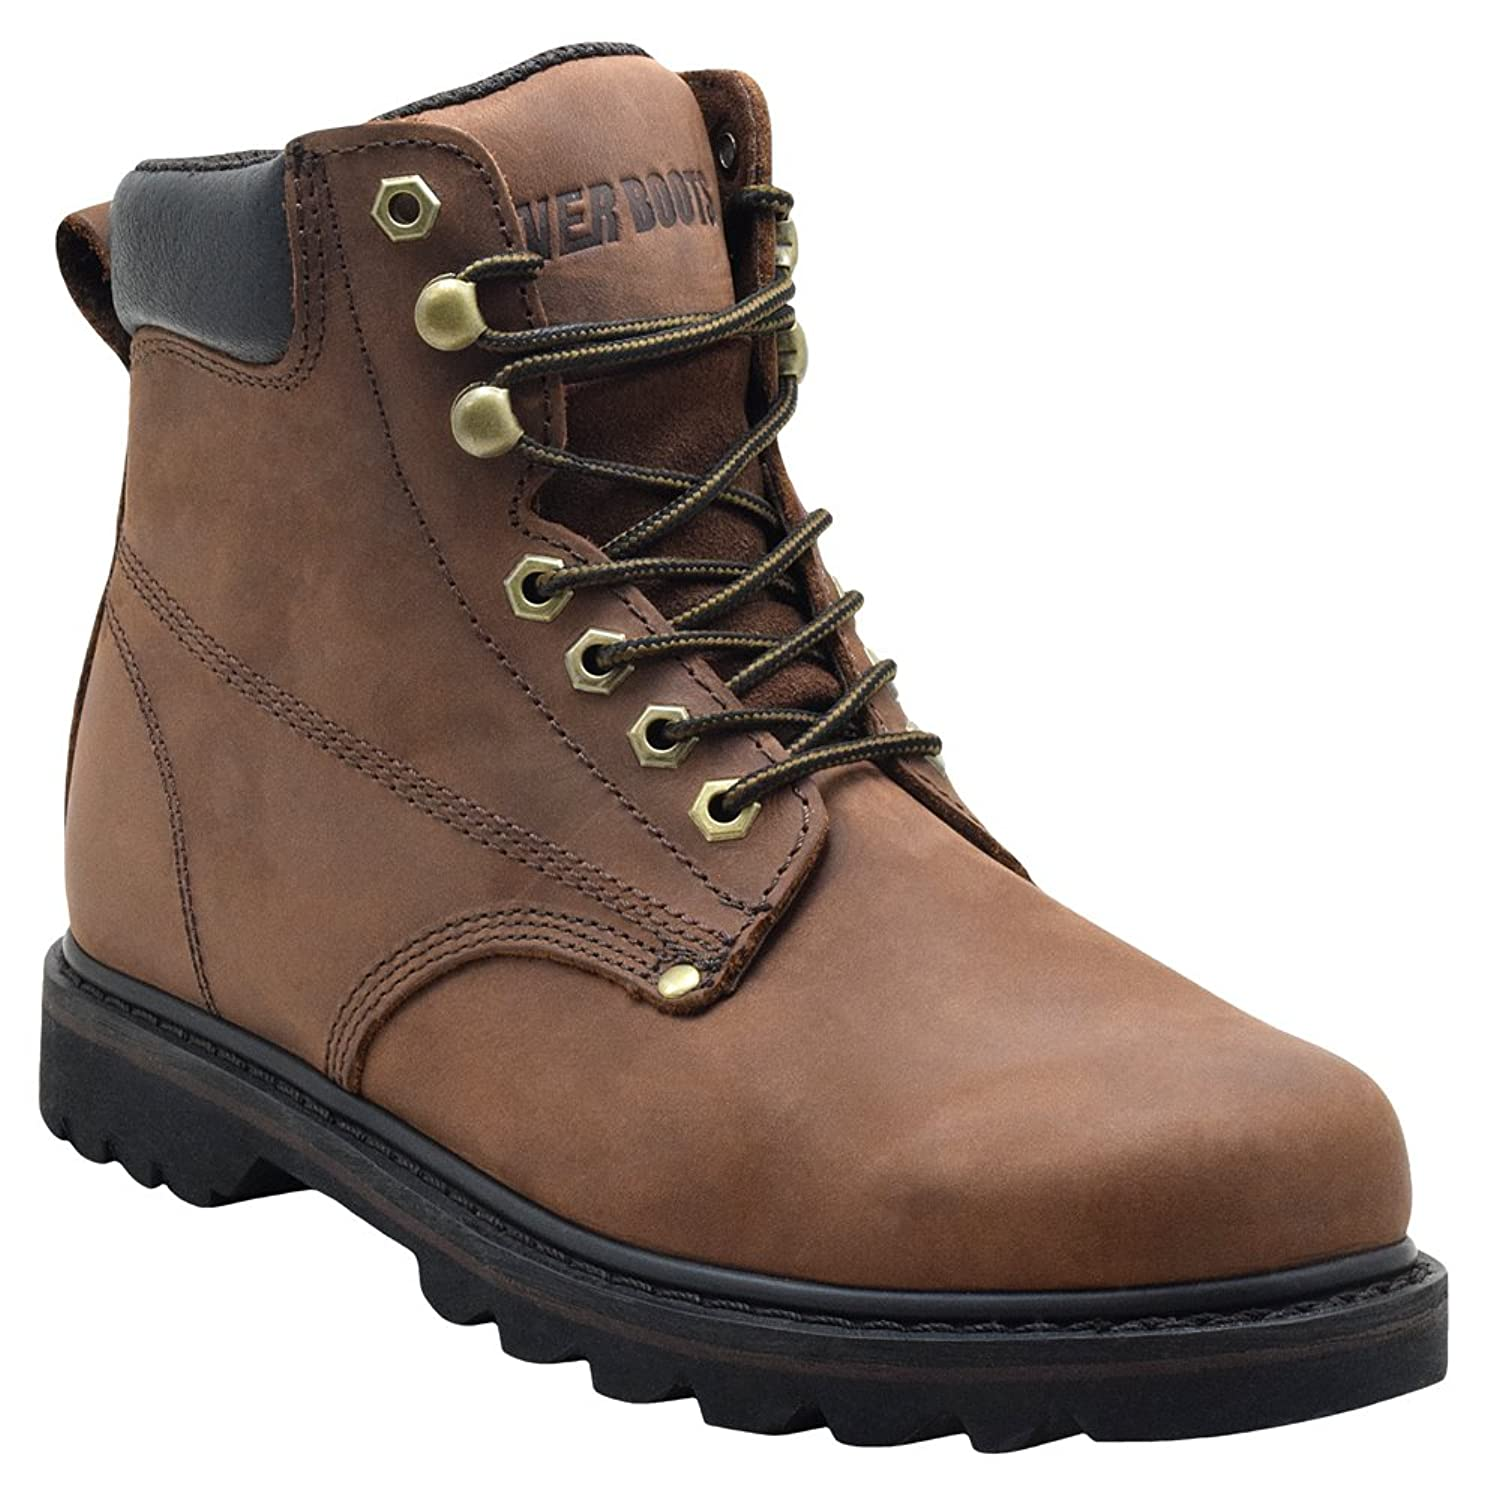 Boots - Amazon Com Ever Boots Tank Men S Soft Toe Oil Full Grain Leather Insulated Work Boots Construction Rubber Sole Industrial Construction Boots